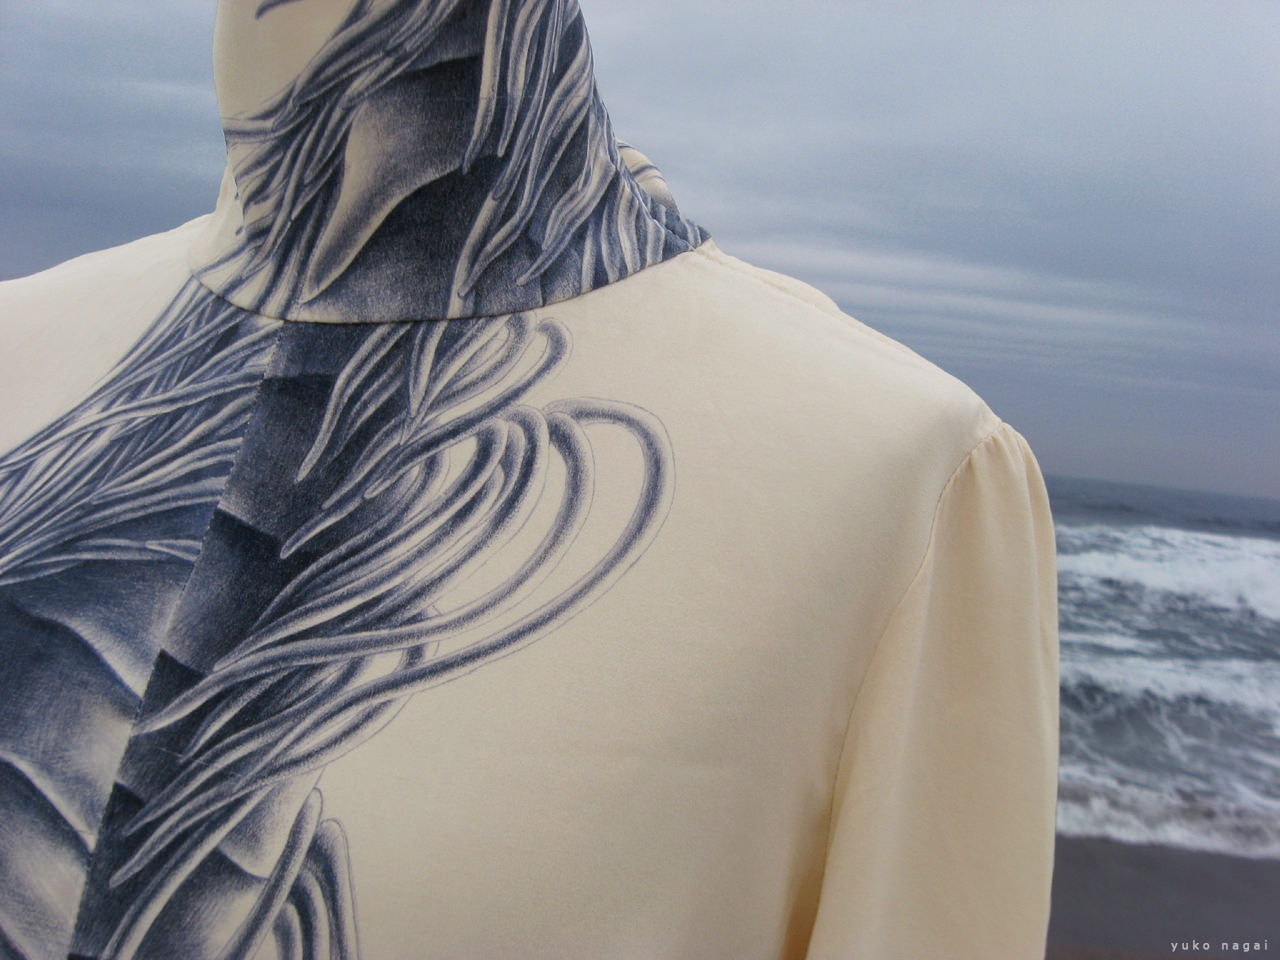 A hand painted blouse on the beach.